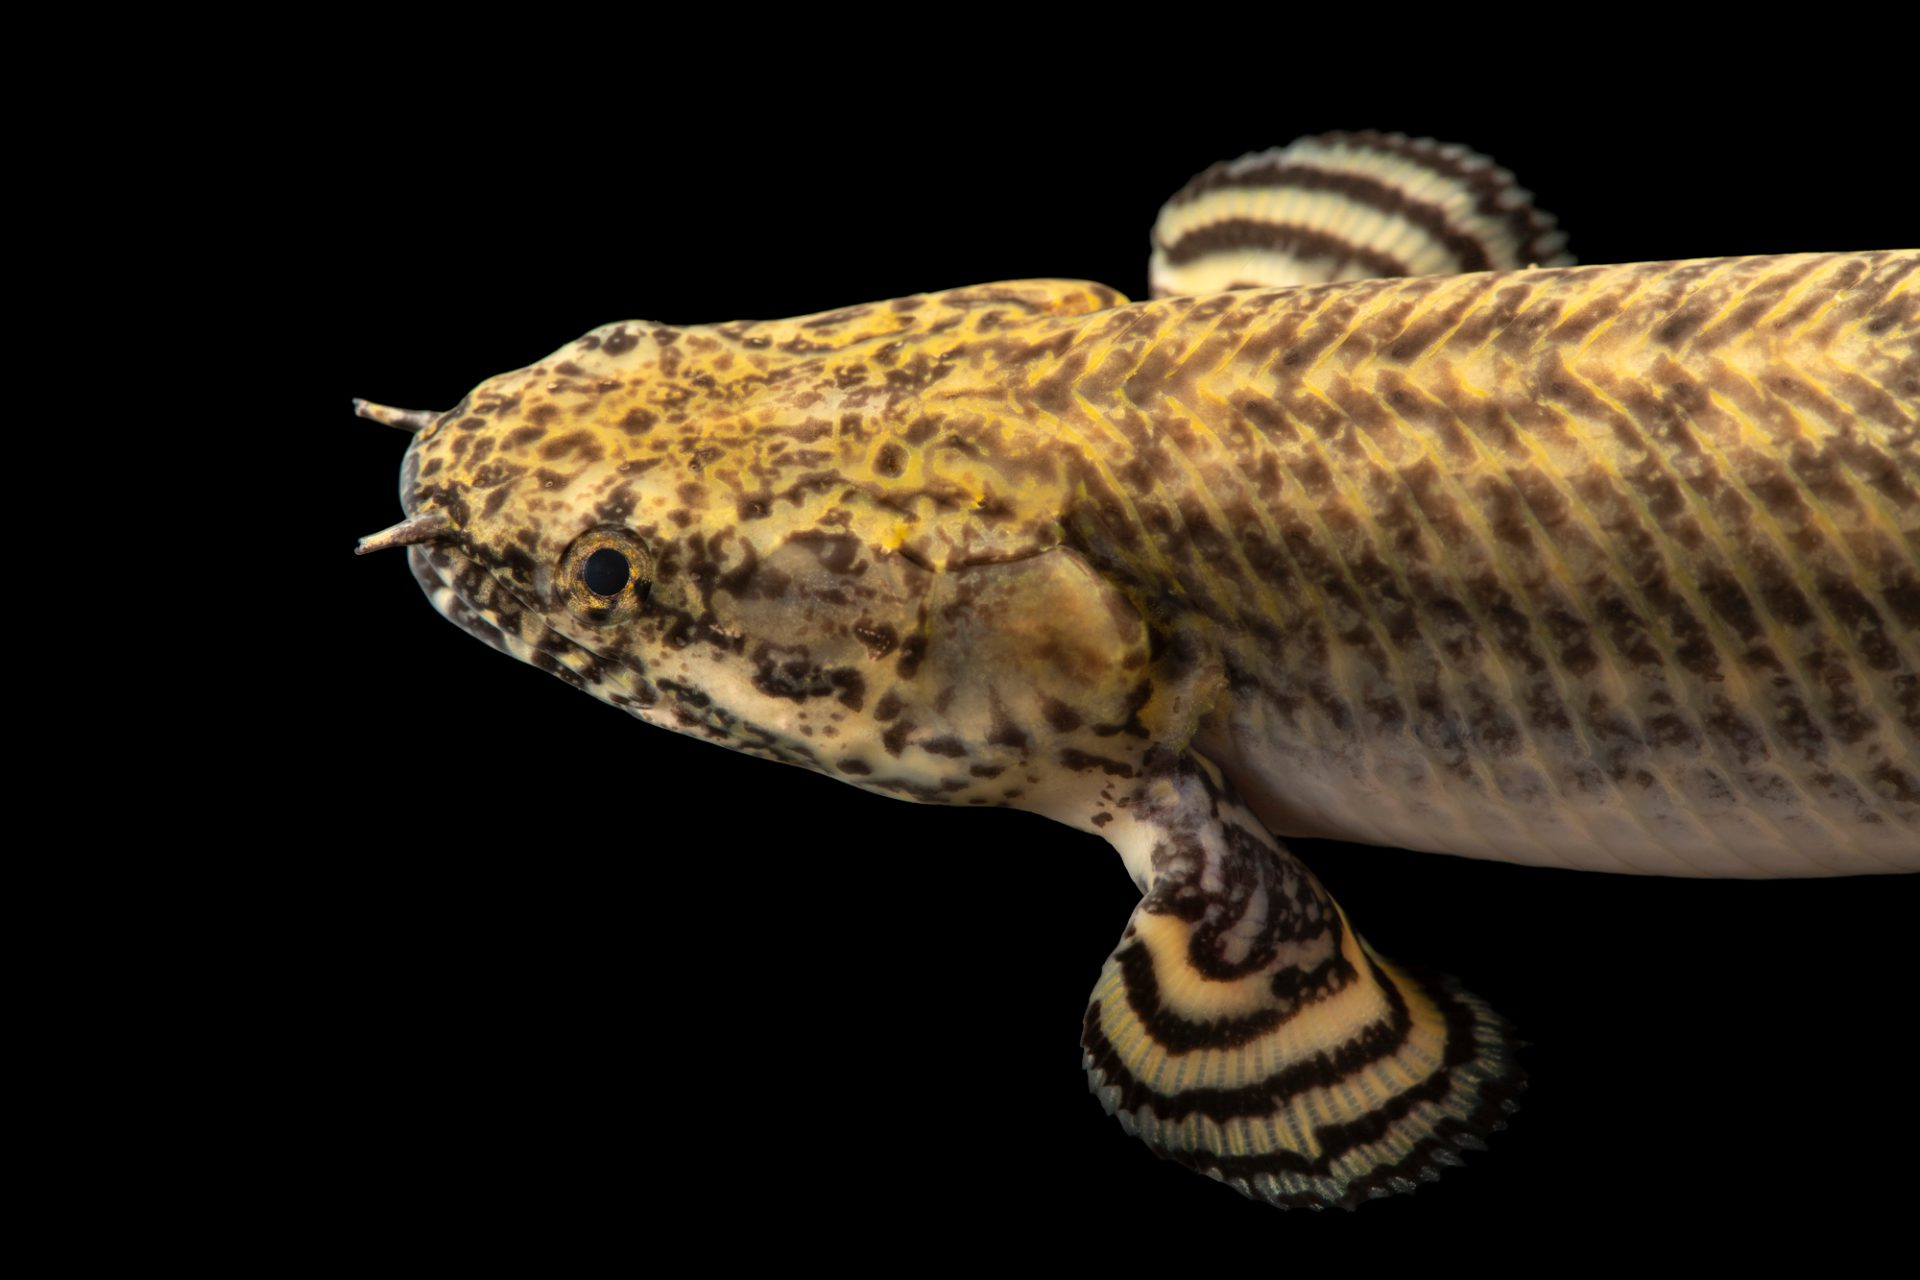 Photo: Ornate bichir (Polypterus ornatipinnis) at Moscow Zoo.